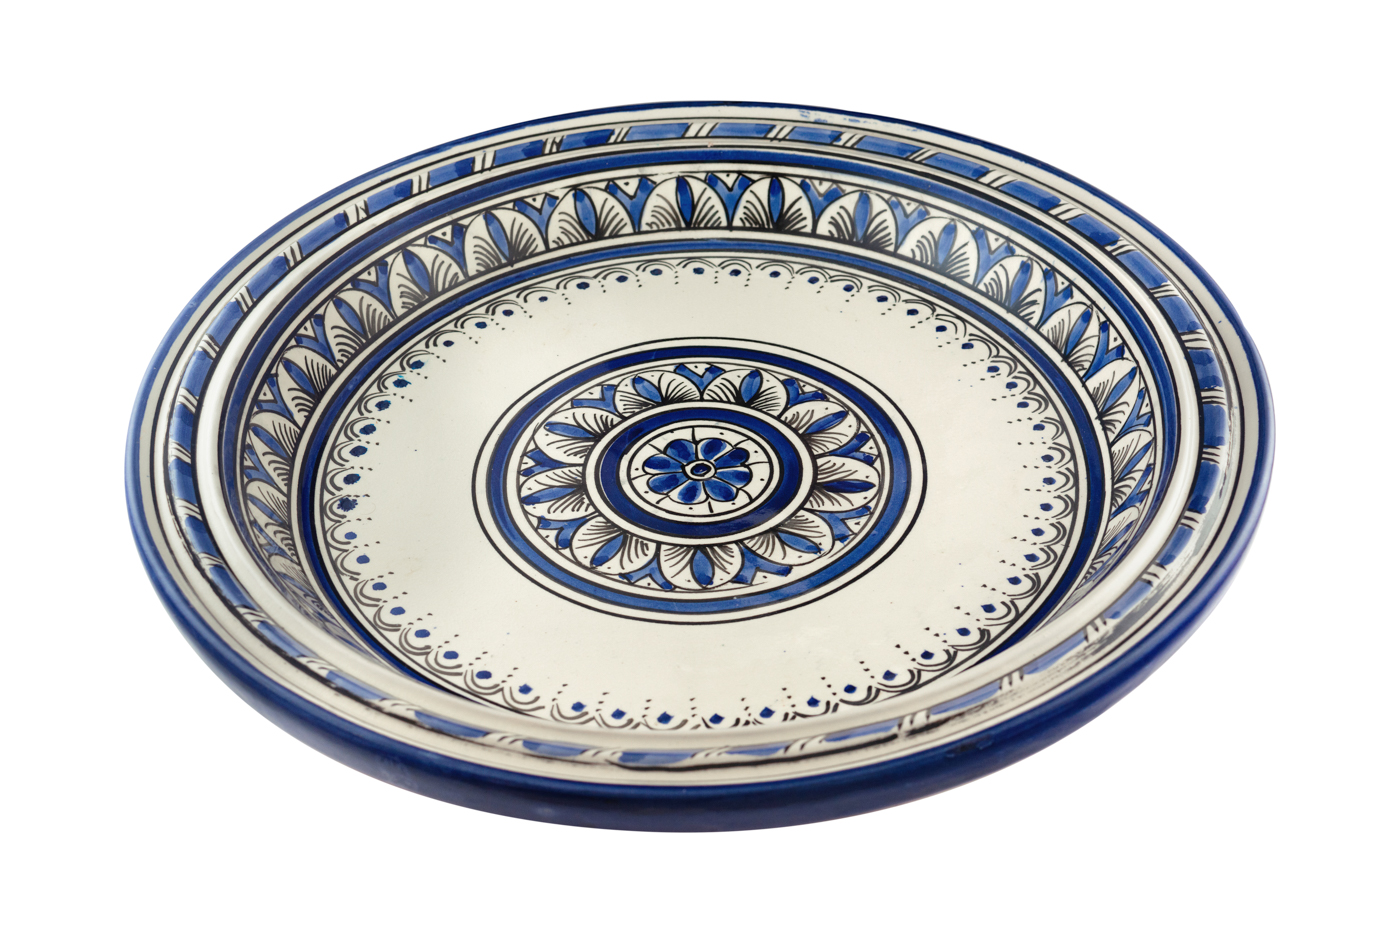 Moroccan tray in painted ceramic with floral arabesque designs- Blue/white